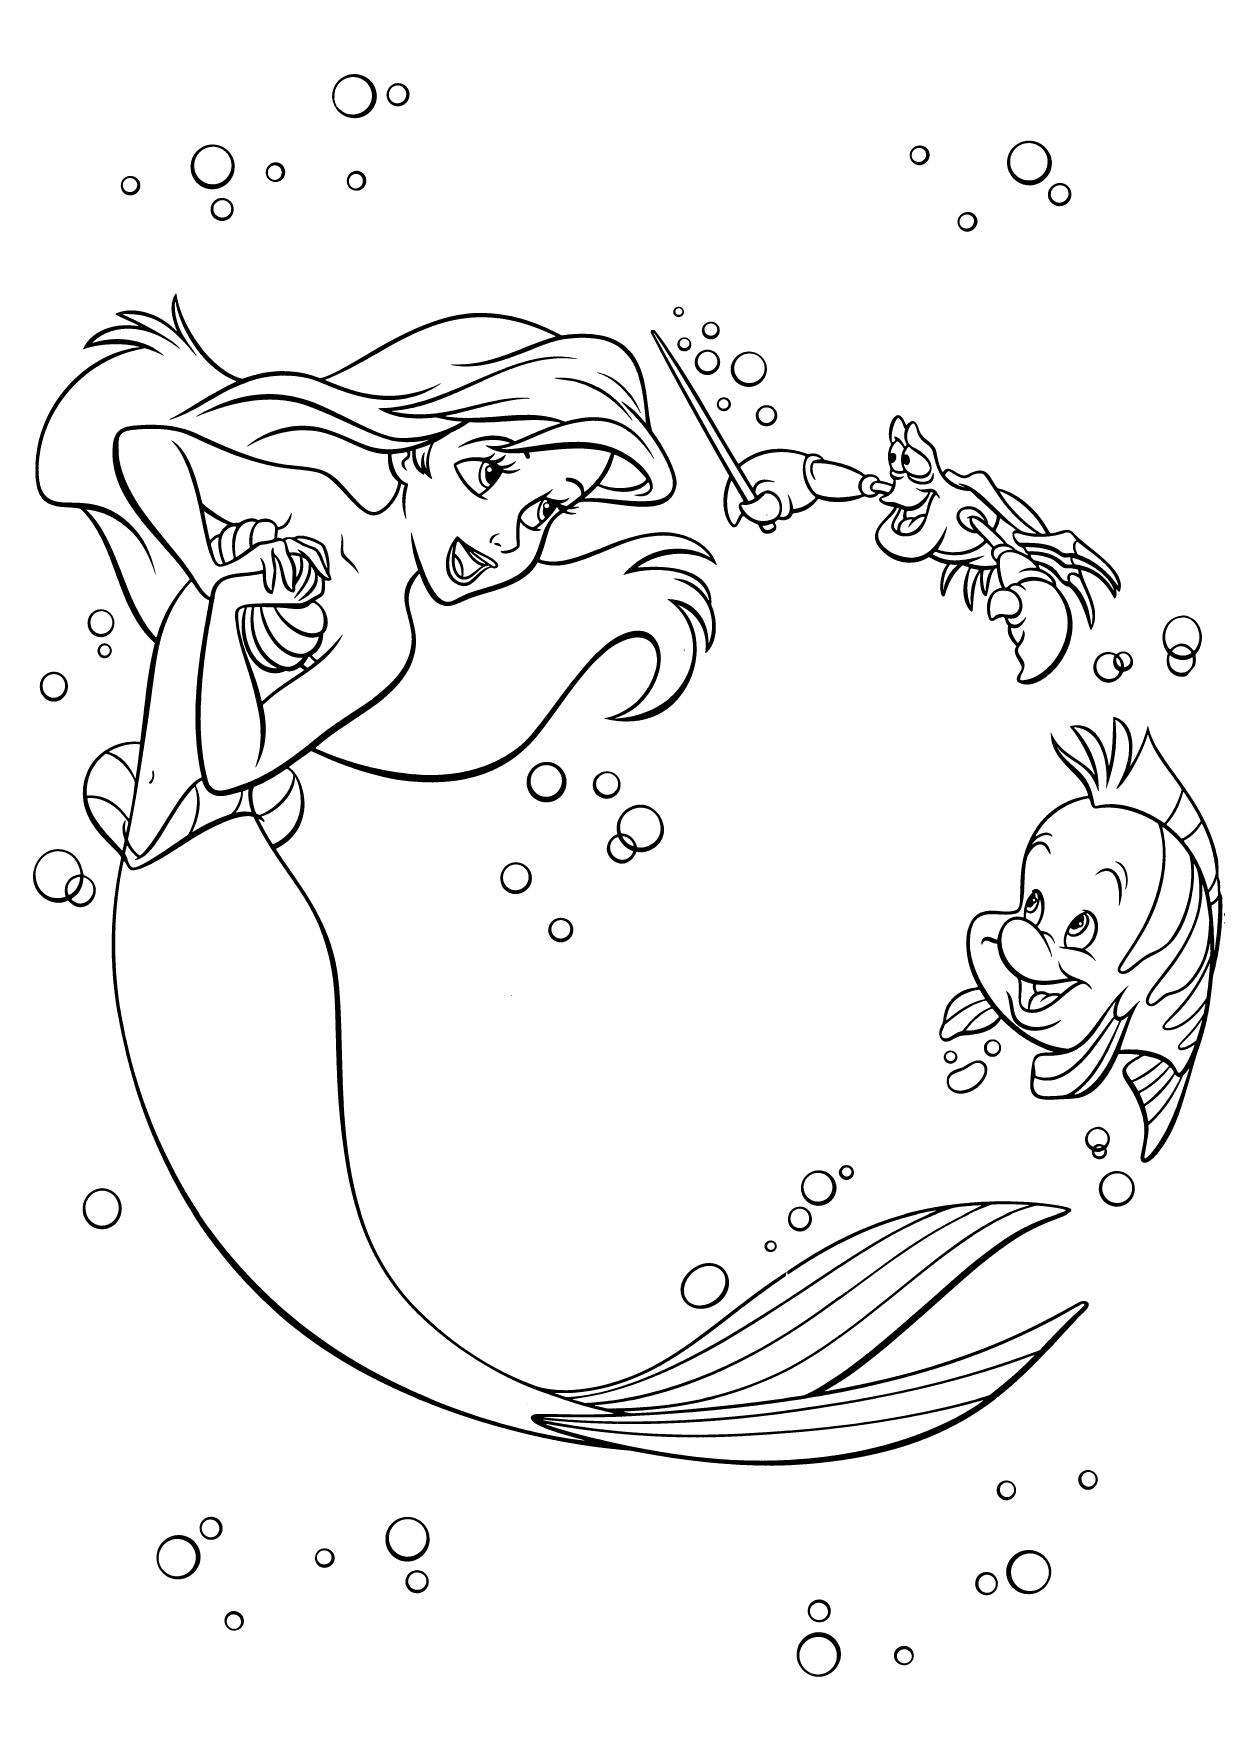 coloring pages from childrens books - photo#38